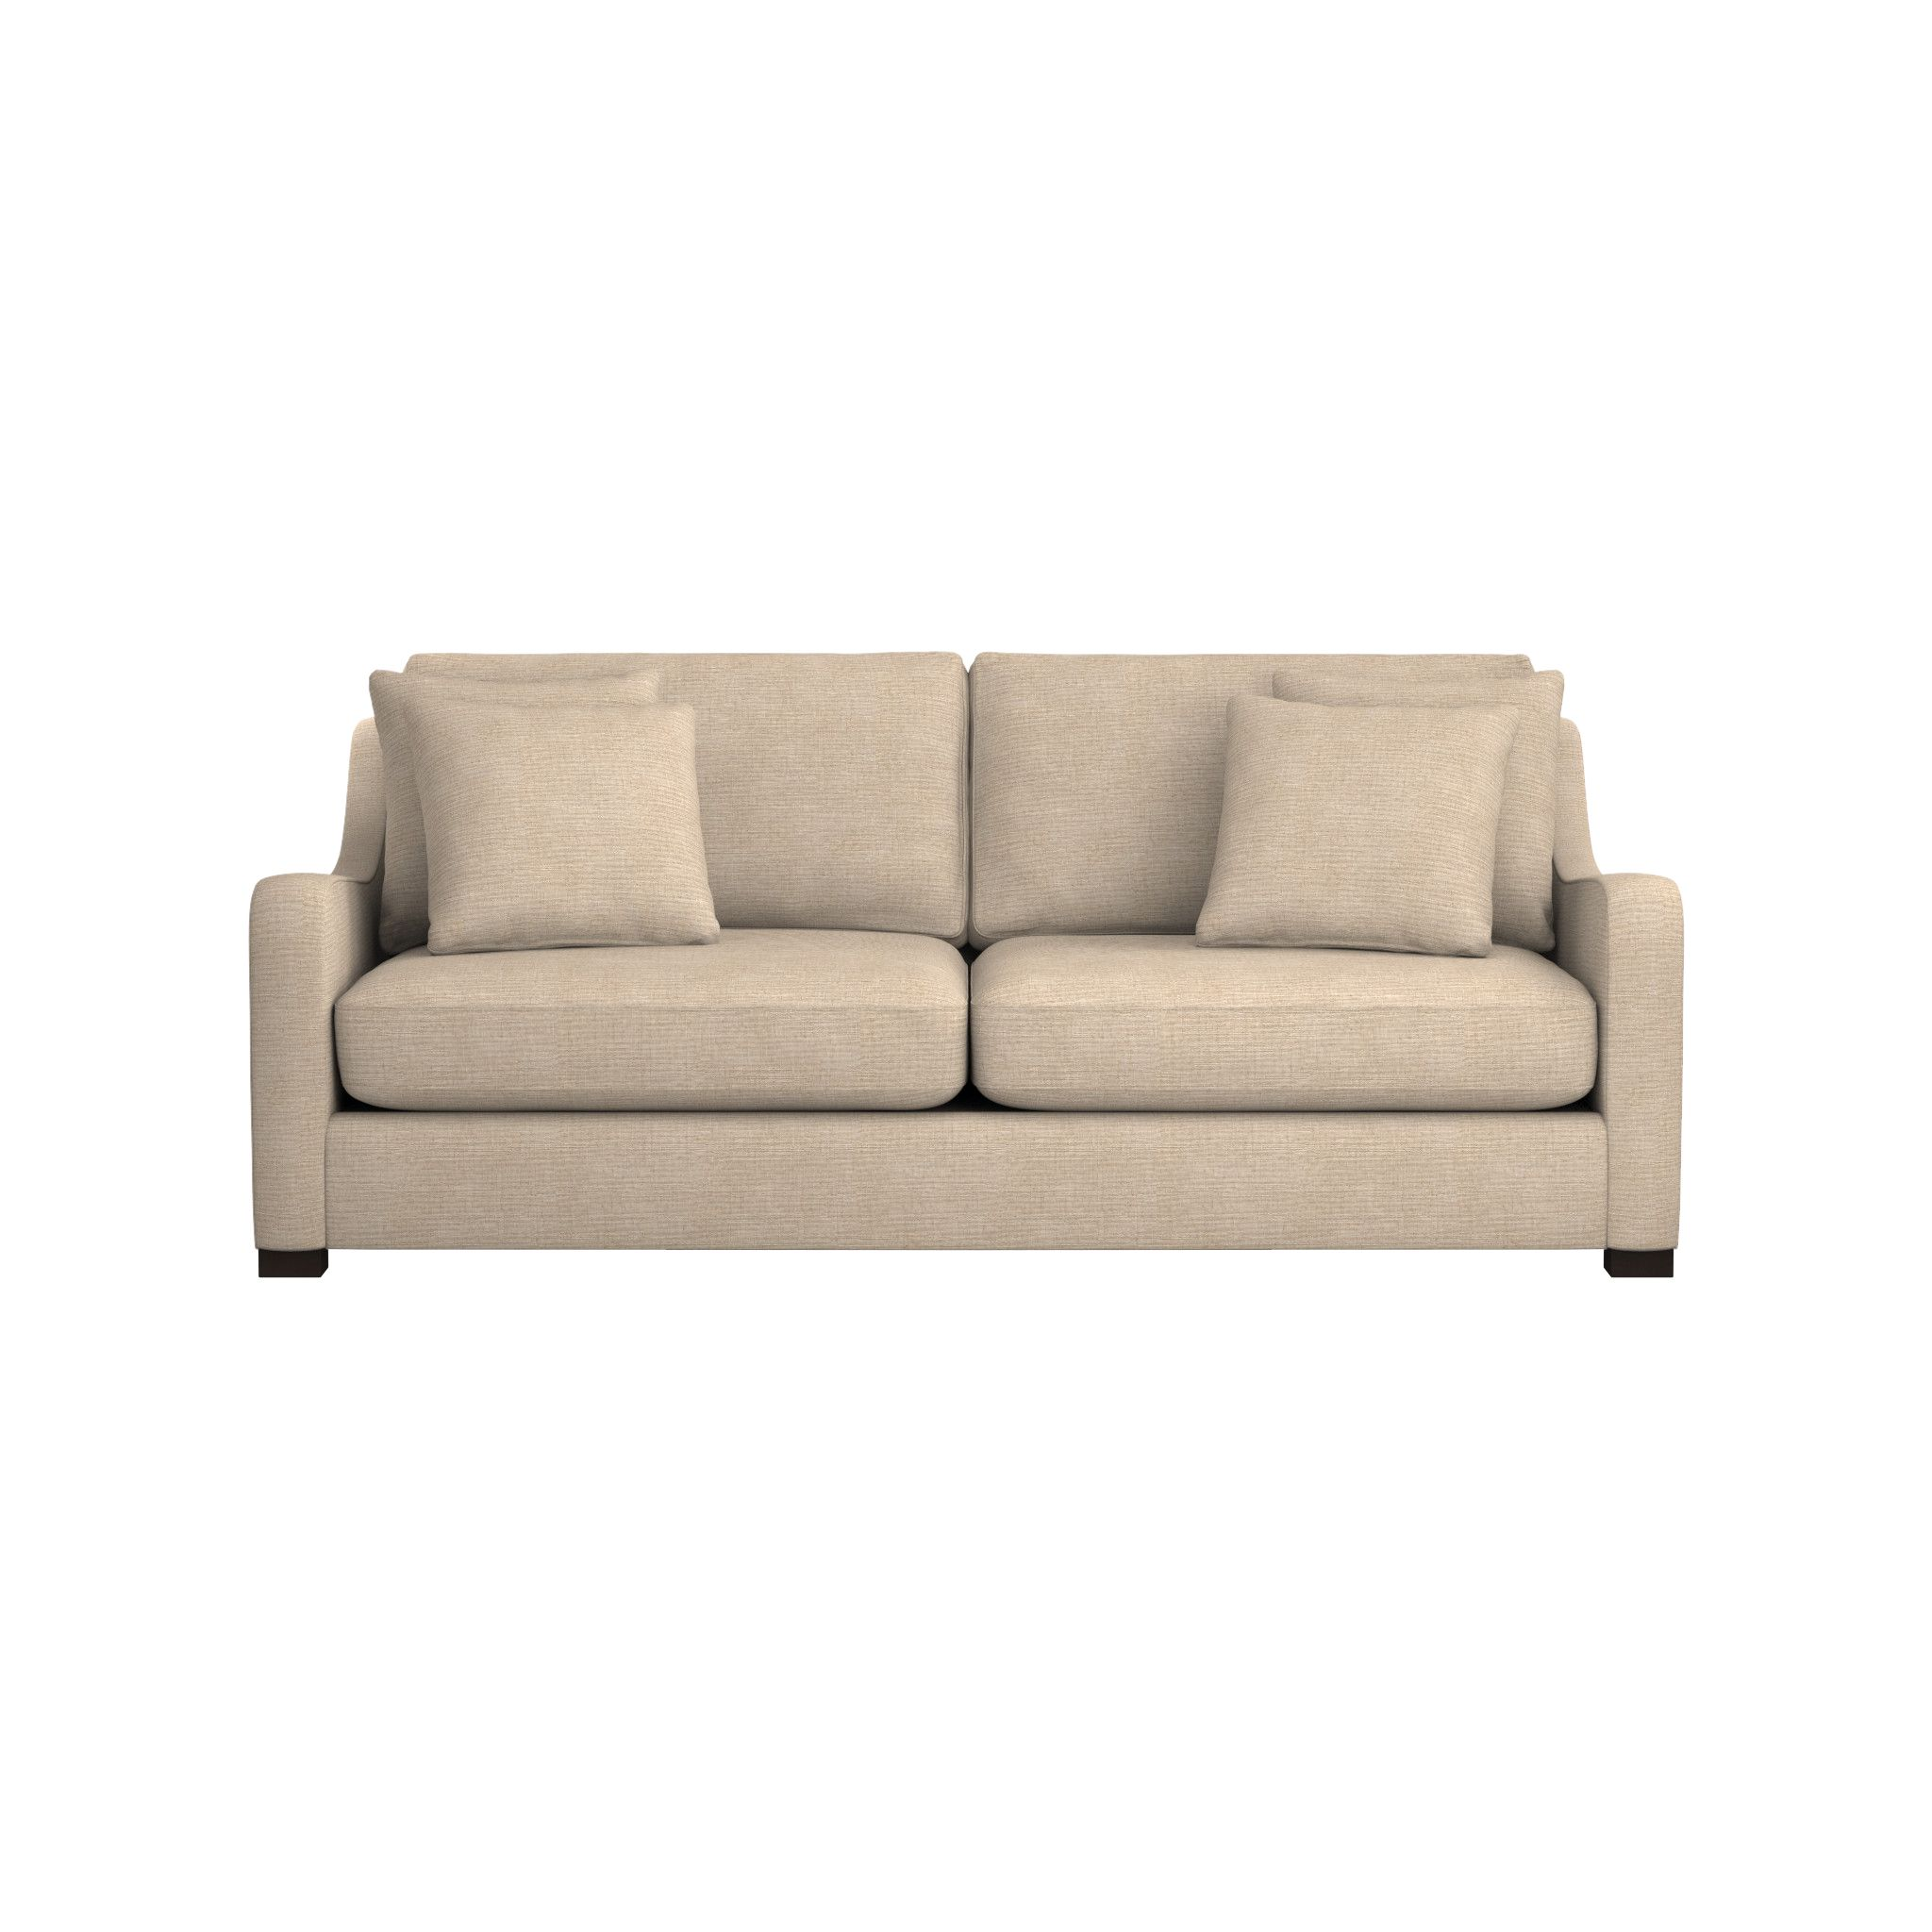 crate and barrel lounge sofa pilling ikea karlstad l shape furniture sectional